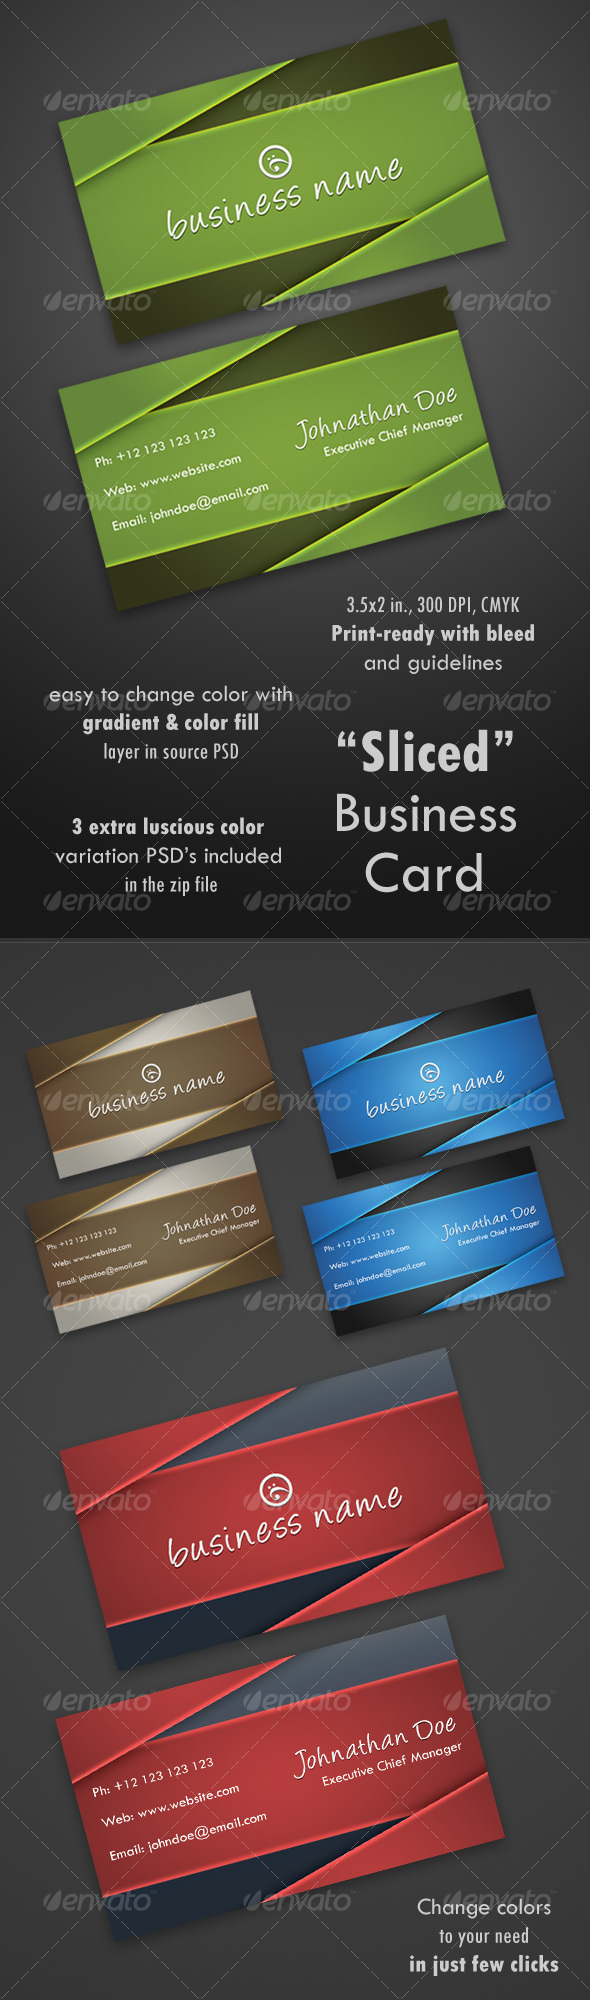 Sliced Business Card - Corporate Business Cards